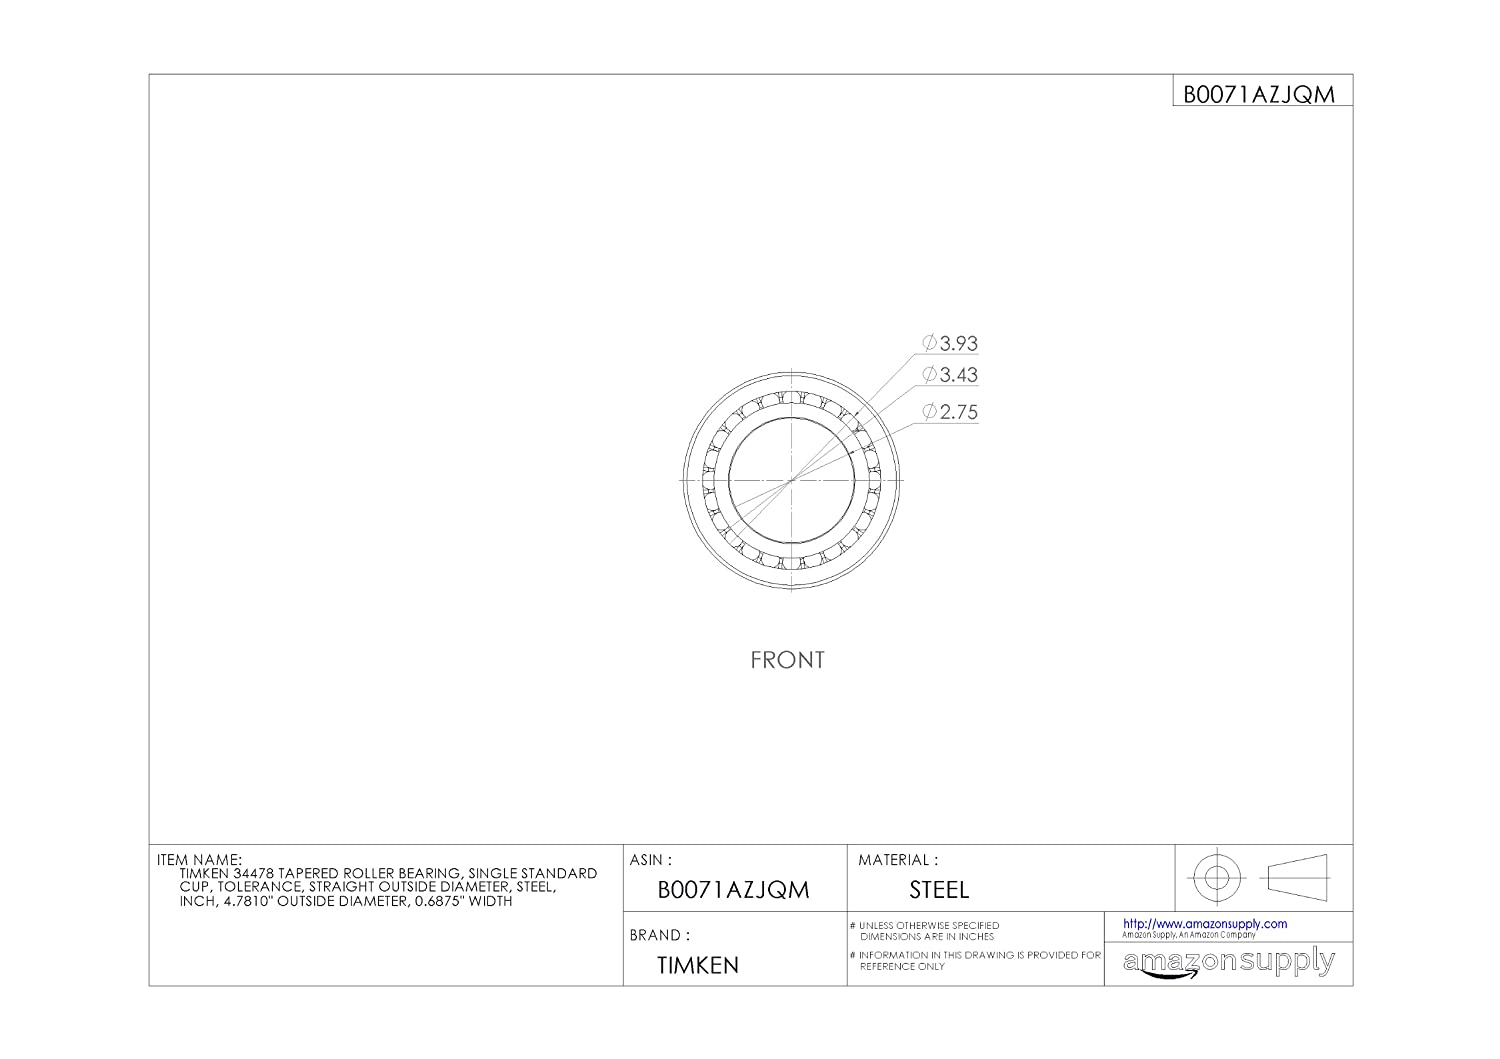 SINGLE CUP TIMKEN 354B TAPERED ROLLER BEARING FLANGED O... STANDARD TOLERANCE